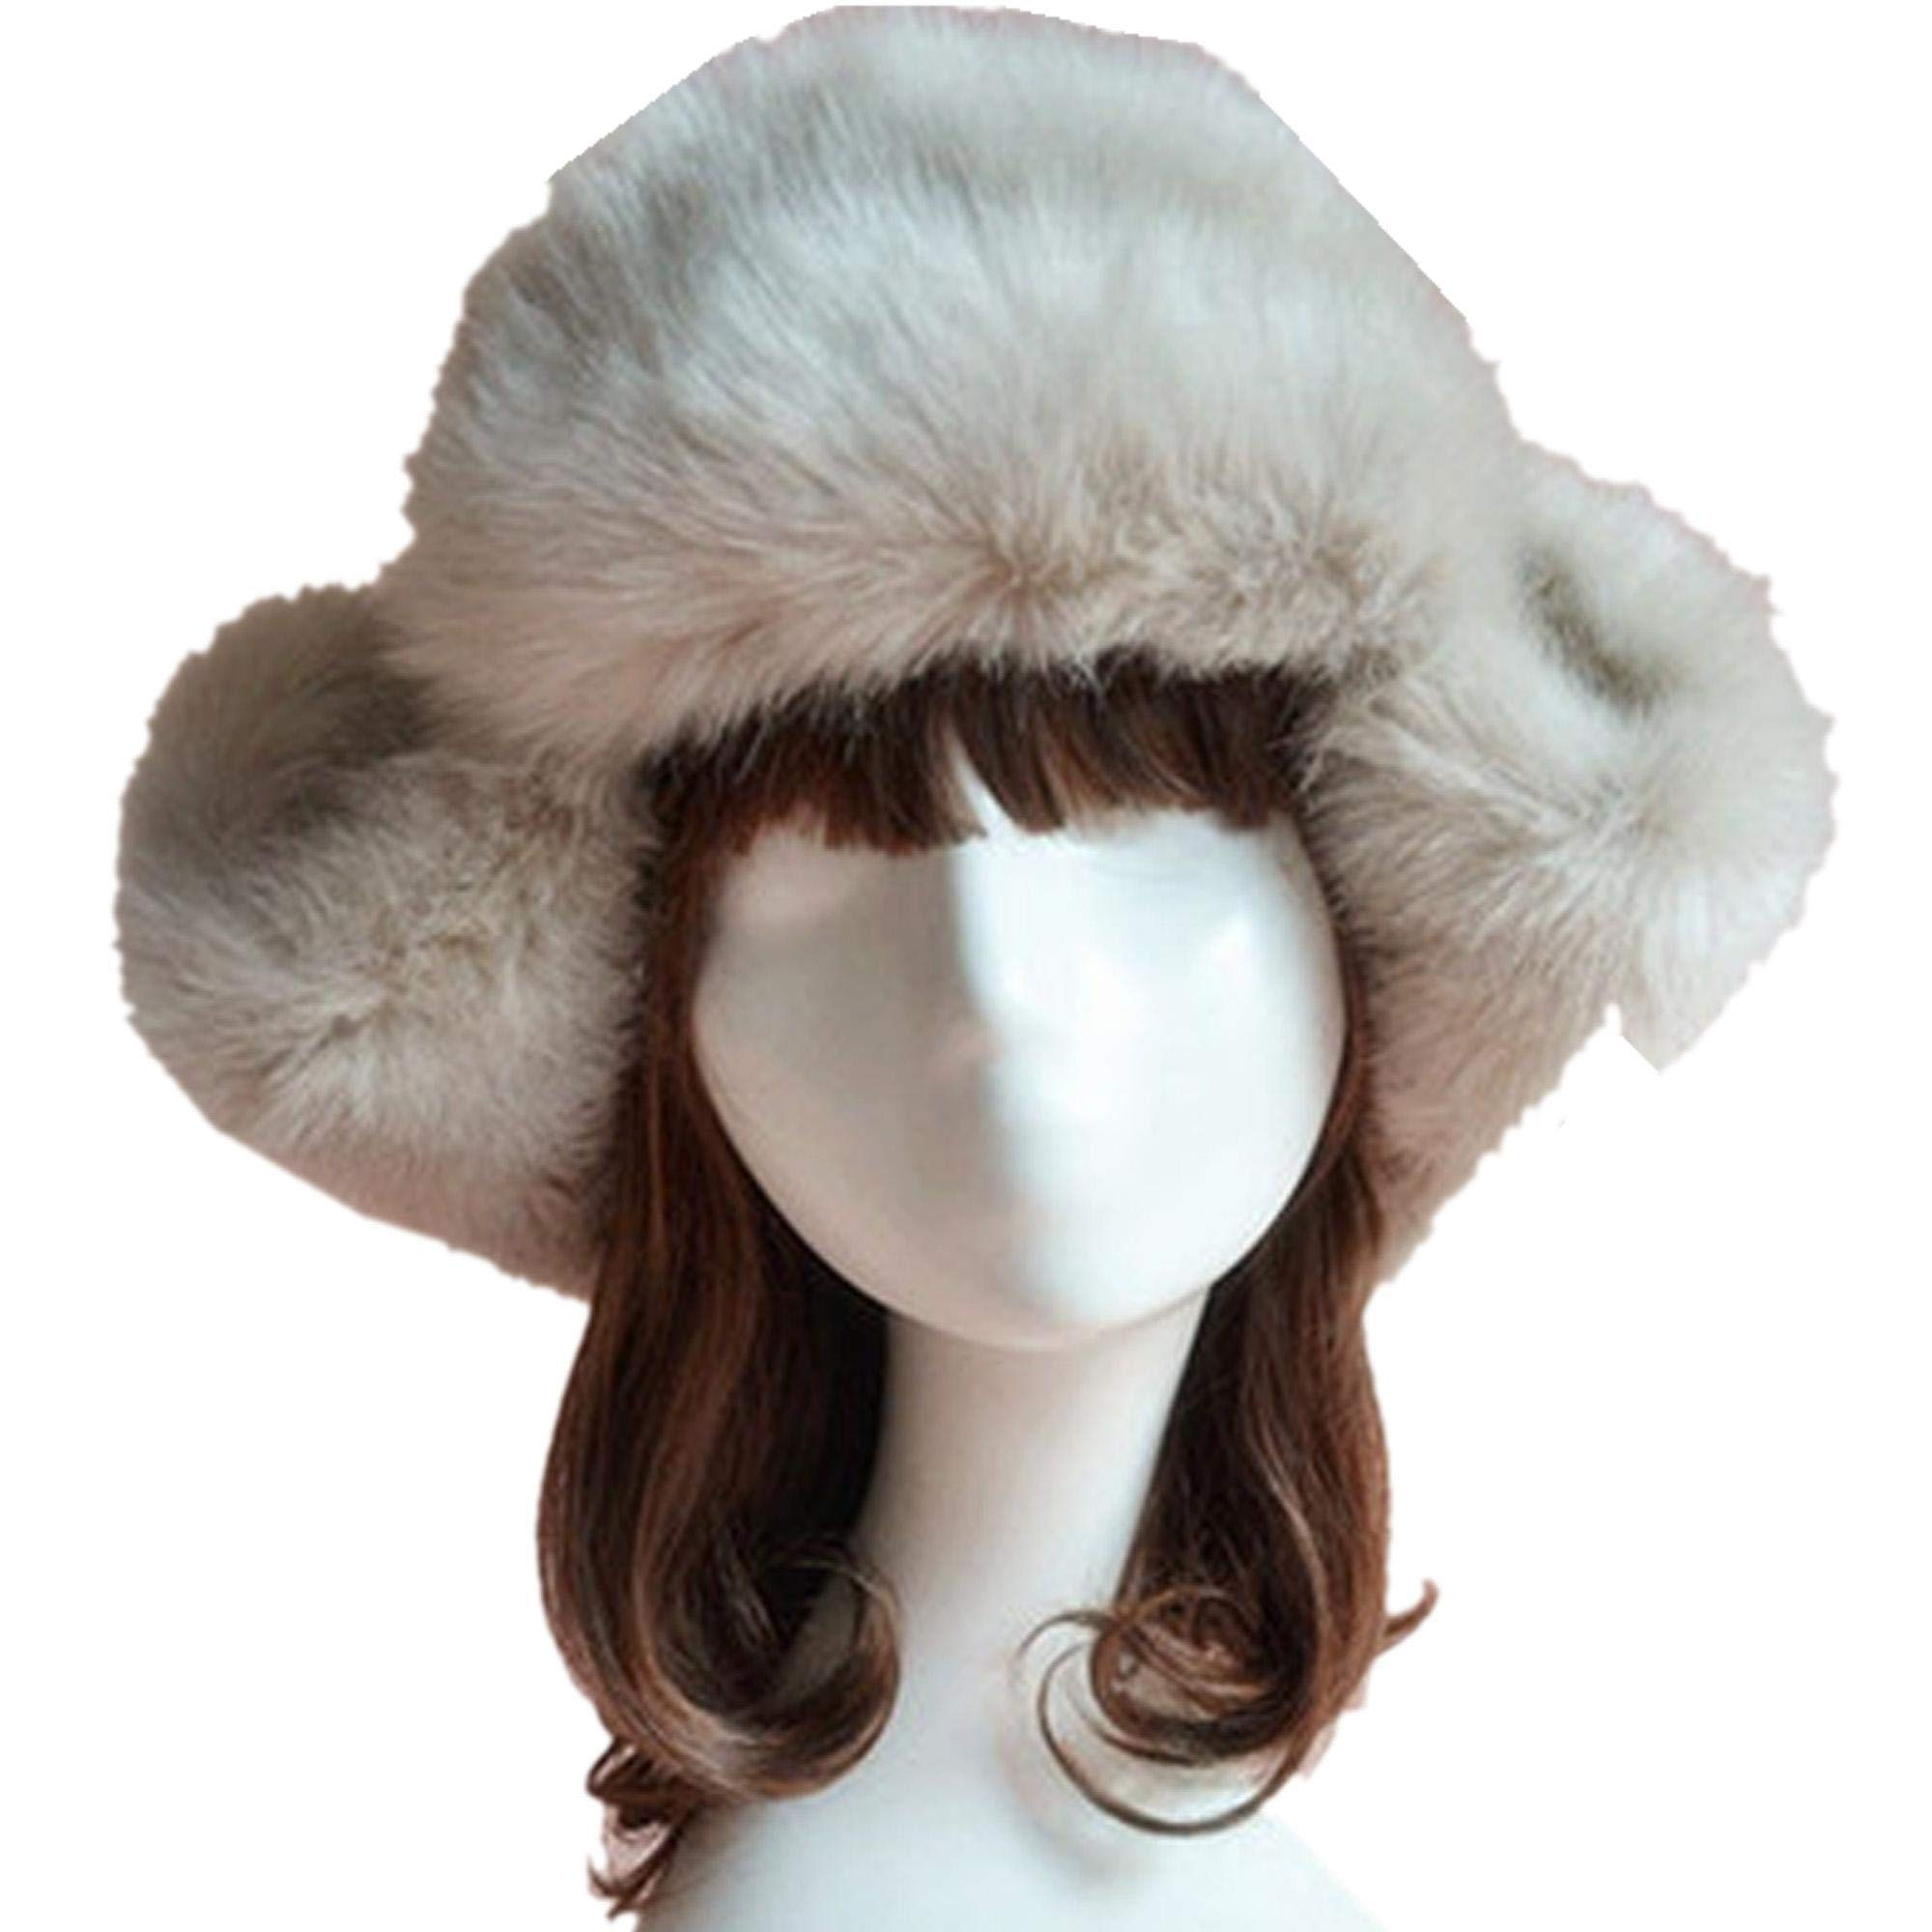 Esqlotres Fashion New Faux Fur Hat Cap For Winter Fuzzy Cap Cold Weather Headbands by Esqlotres